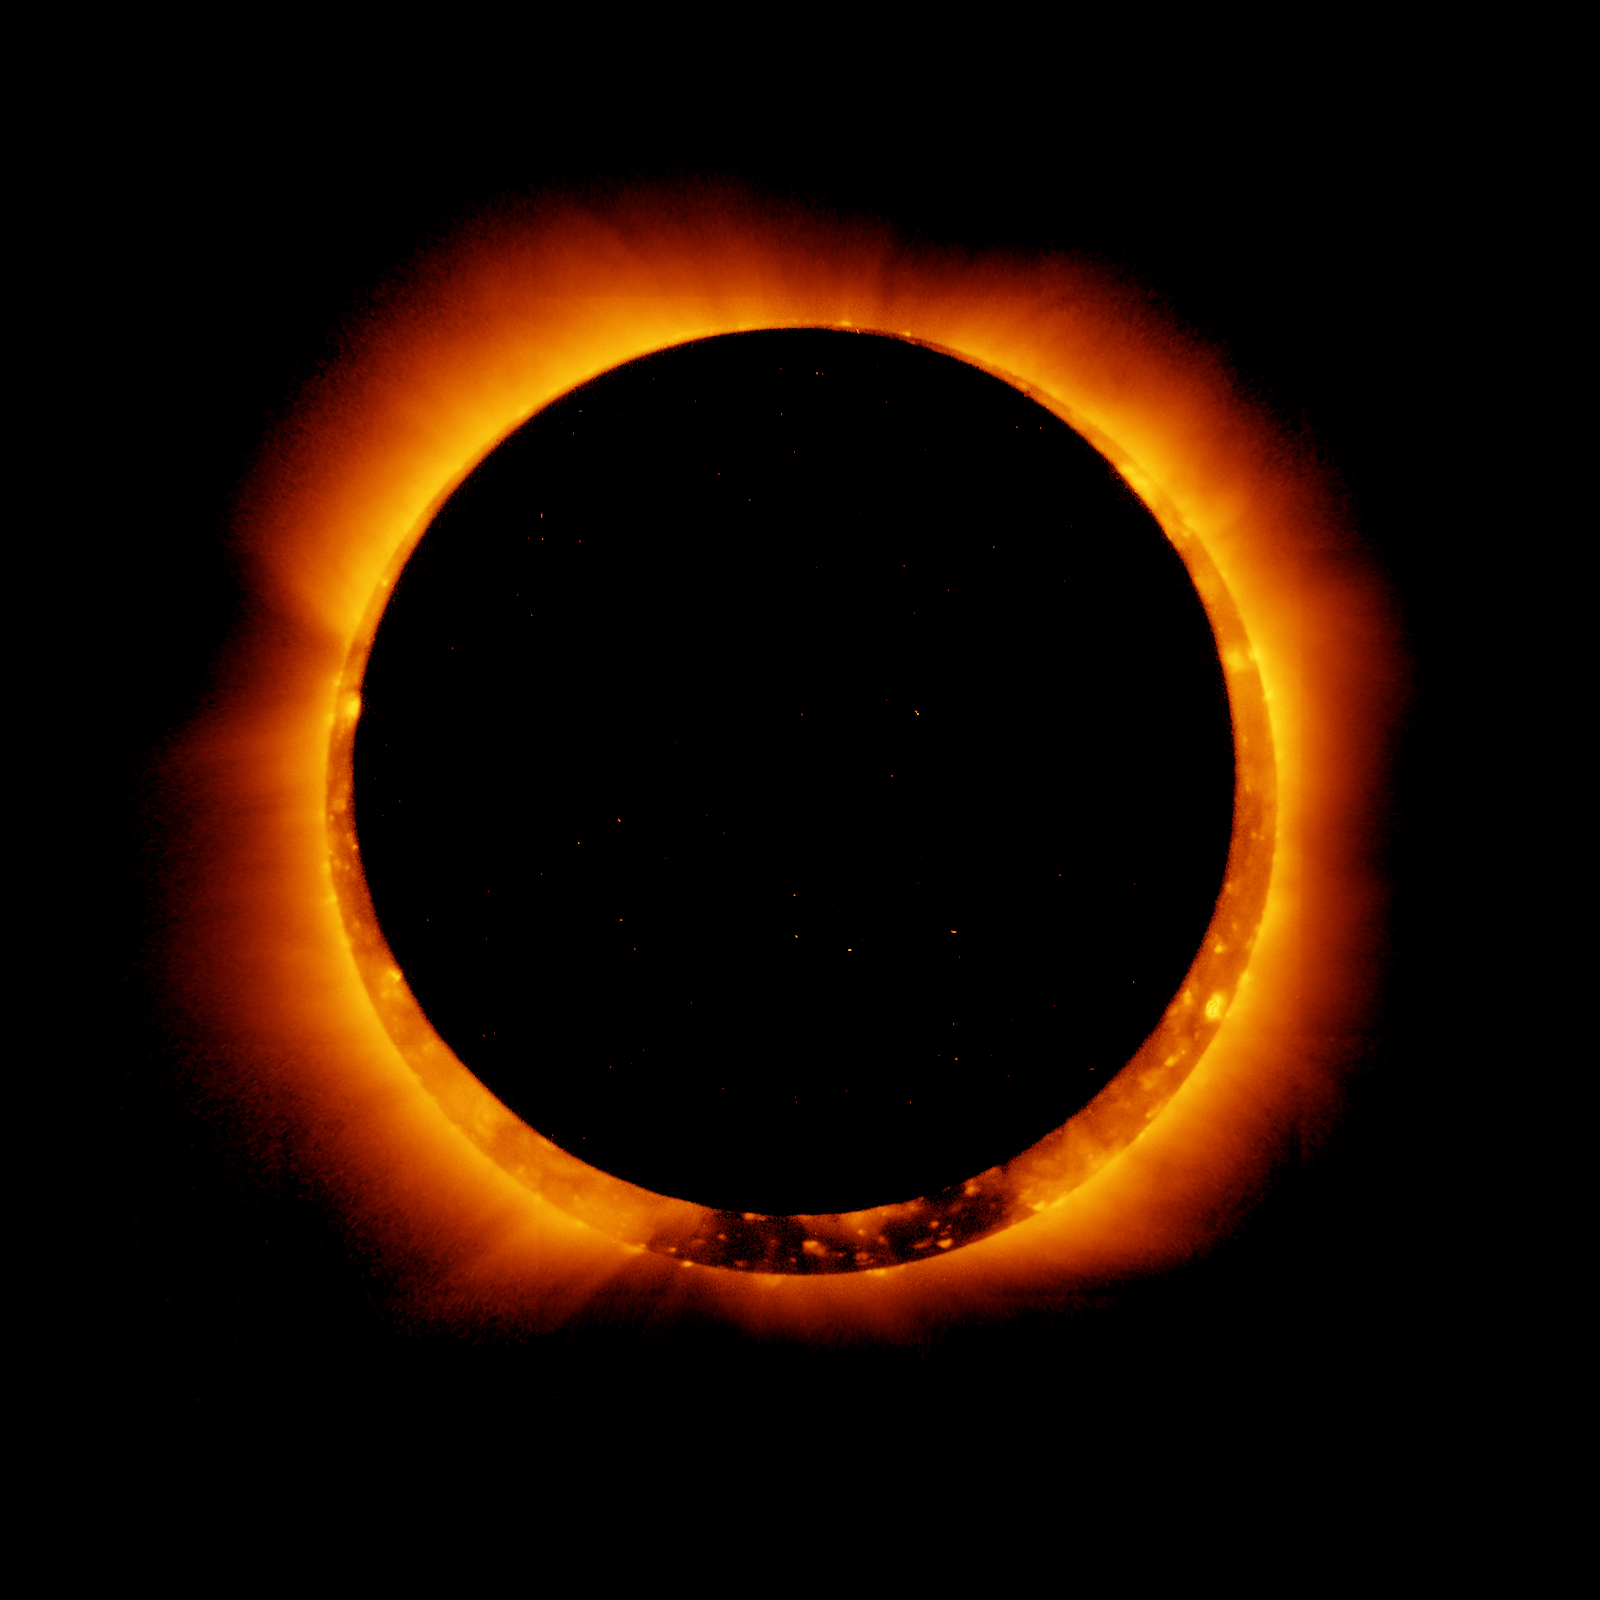 https://i0.wp.com/upload.wikimedia.org/wikipedia/commons/2/20/Hinode_Observes_Annular_Solar_Eclipse%2C_4_Jan_2011.jpg?resize=750&ssl=1